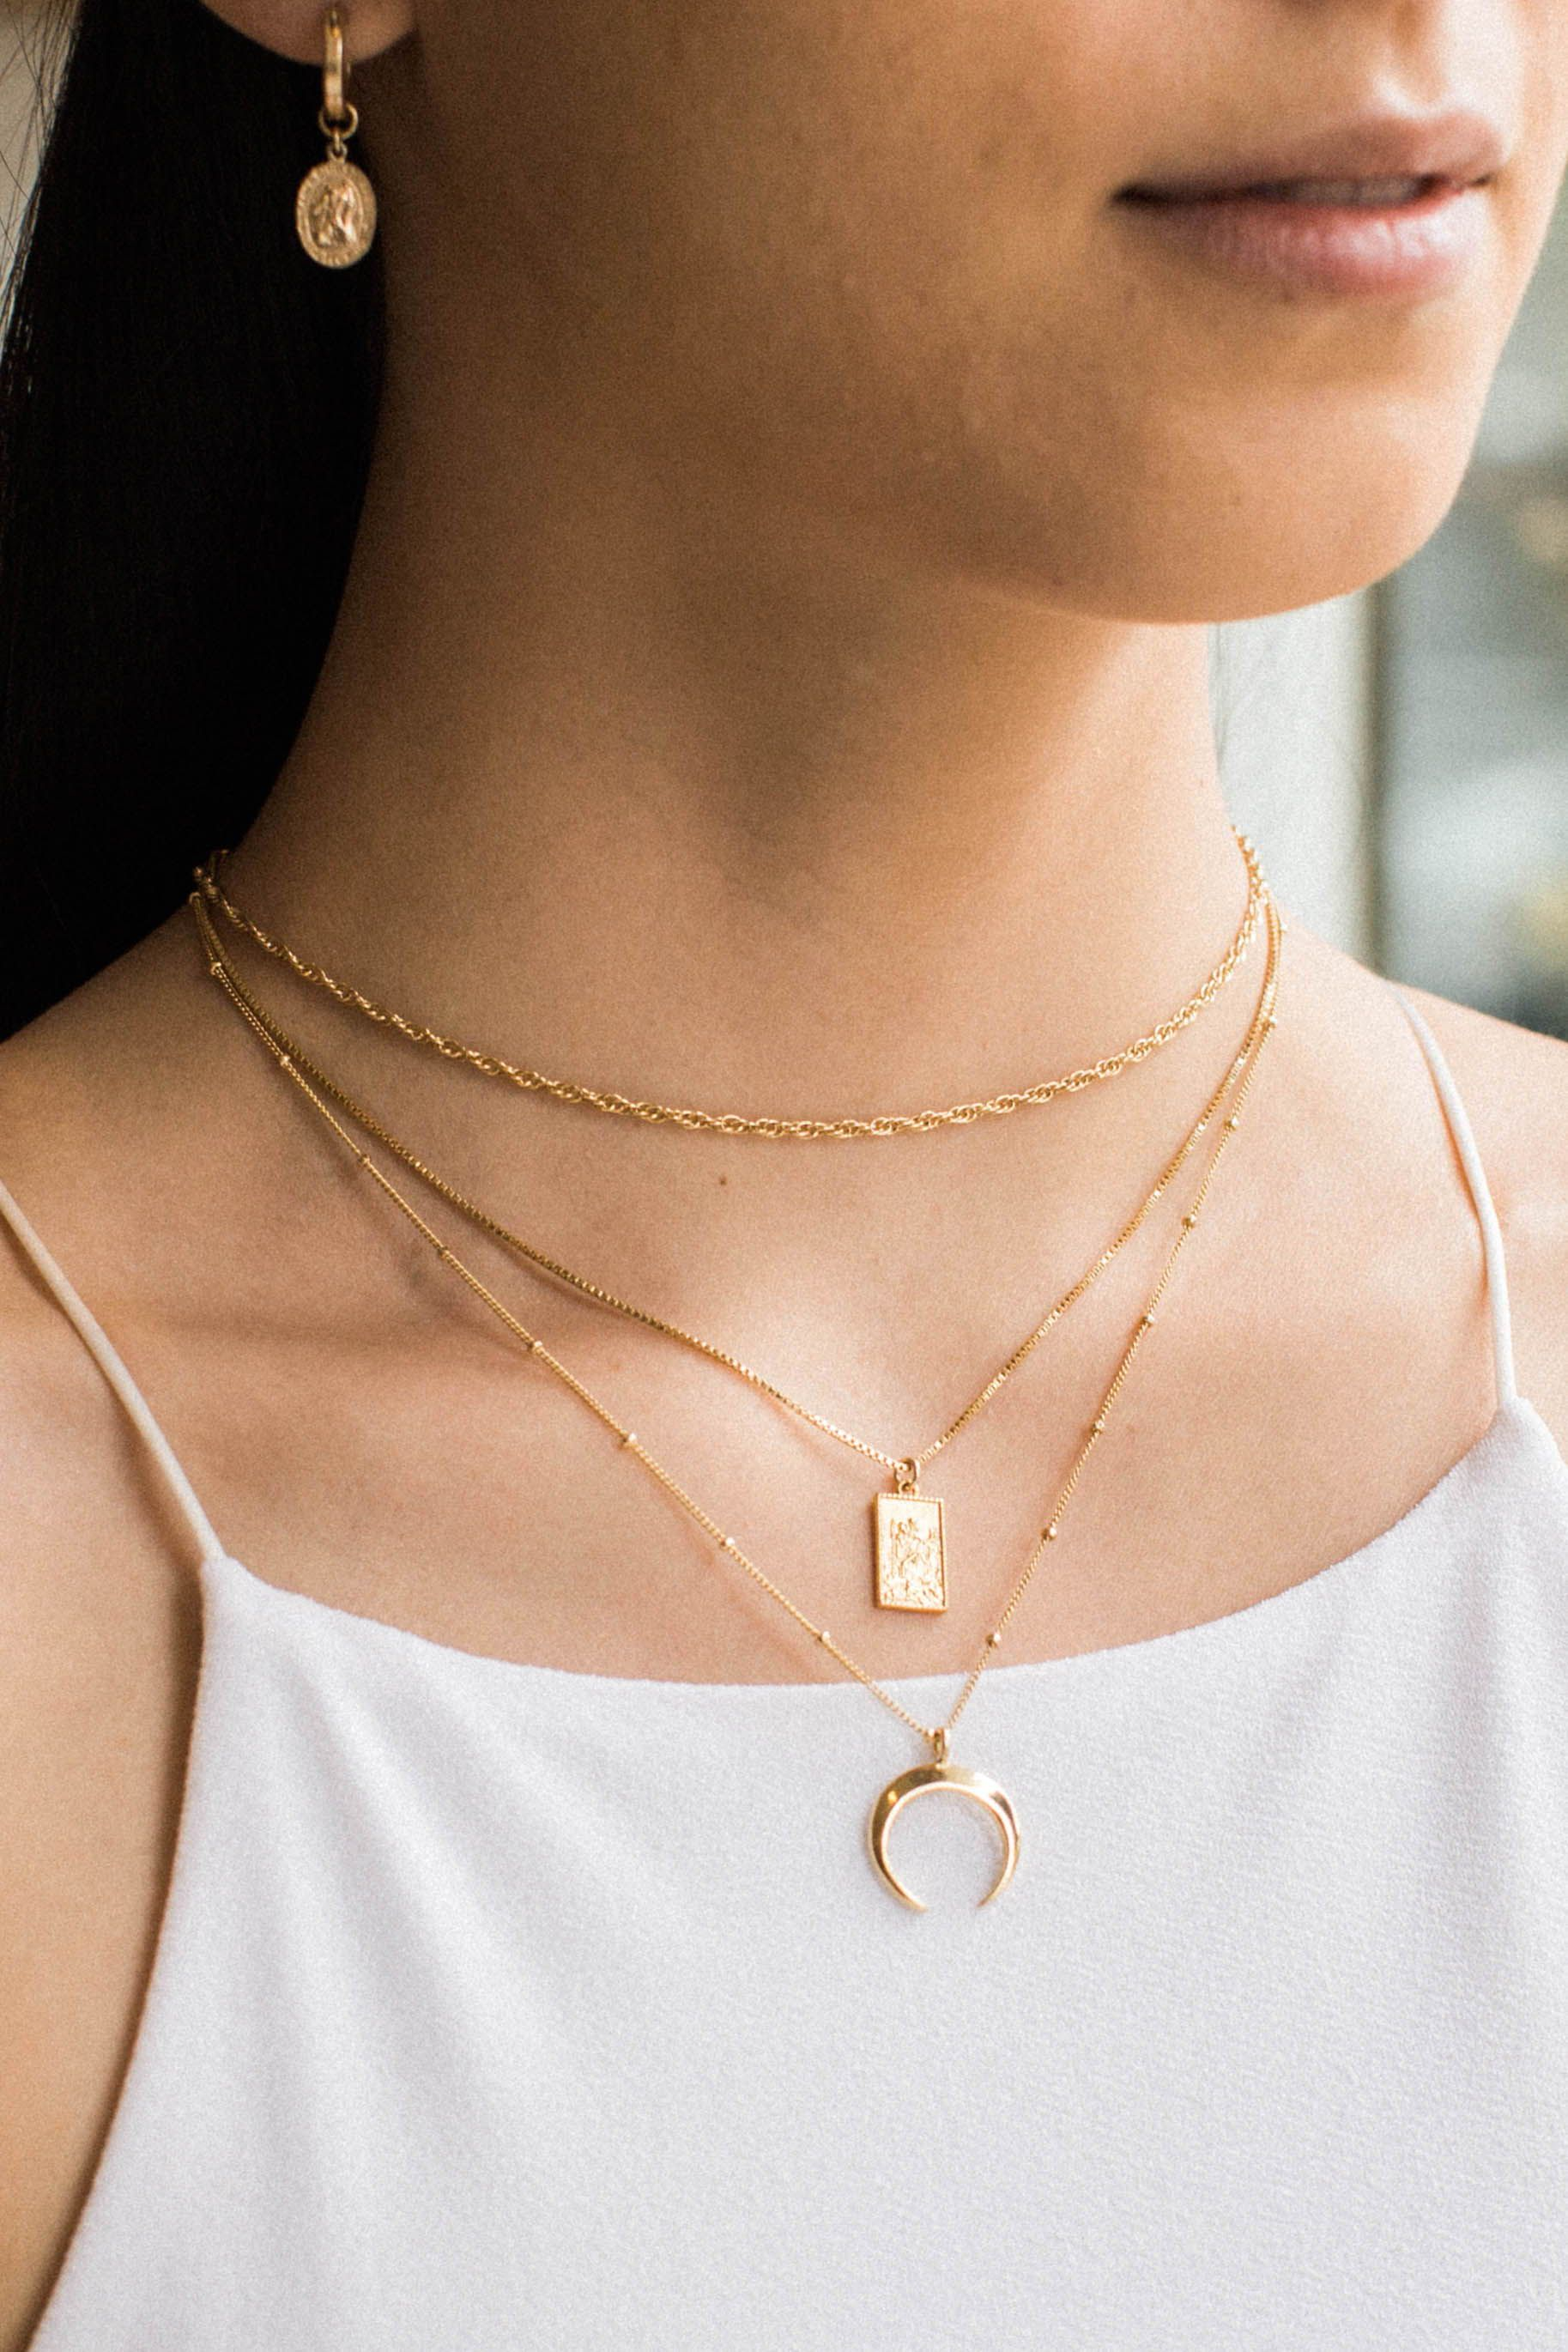 925 Sterling Silver,Minimalist Necklace,Boho Necklace,Dainty Necklace Sweet Simple Four Star Pendant Bridesmaids Jewellery. Gift for her